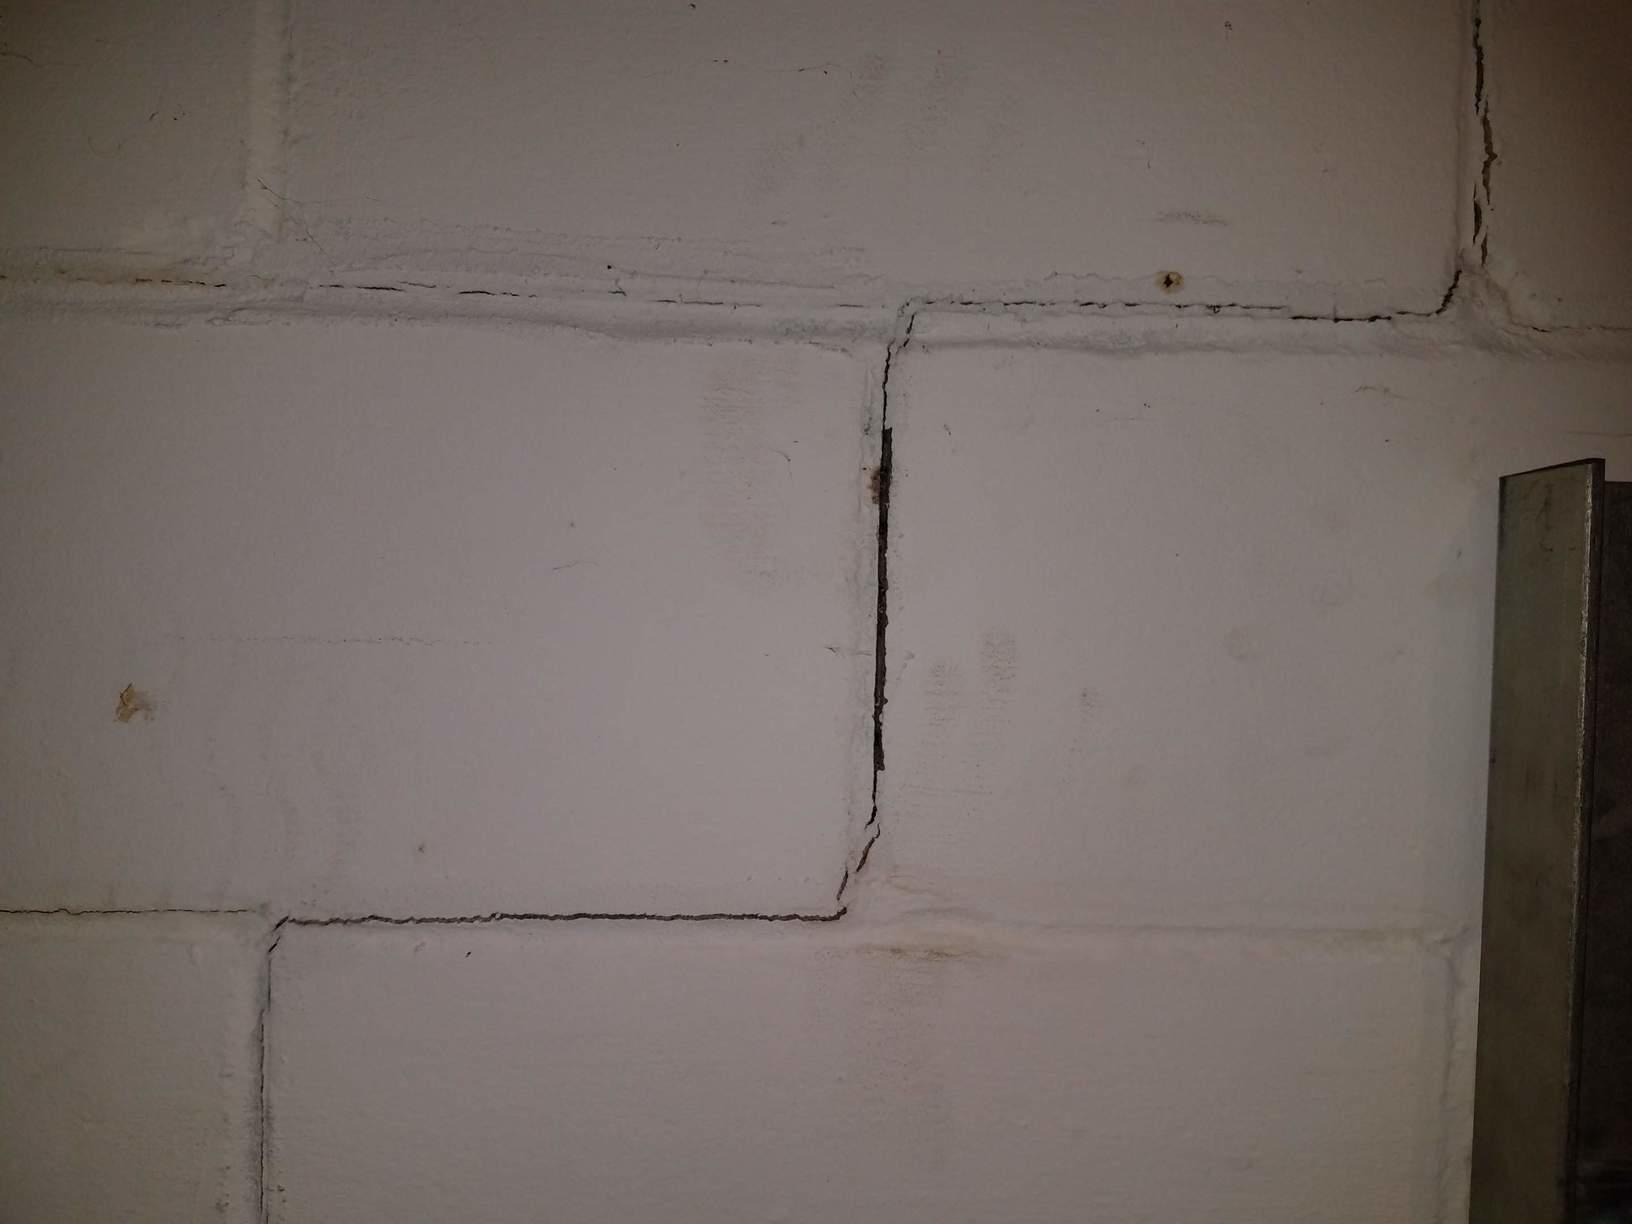 The stair stepping crack is risky to all foundation types and is the first sigh that you homes foundation has a problem.